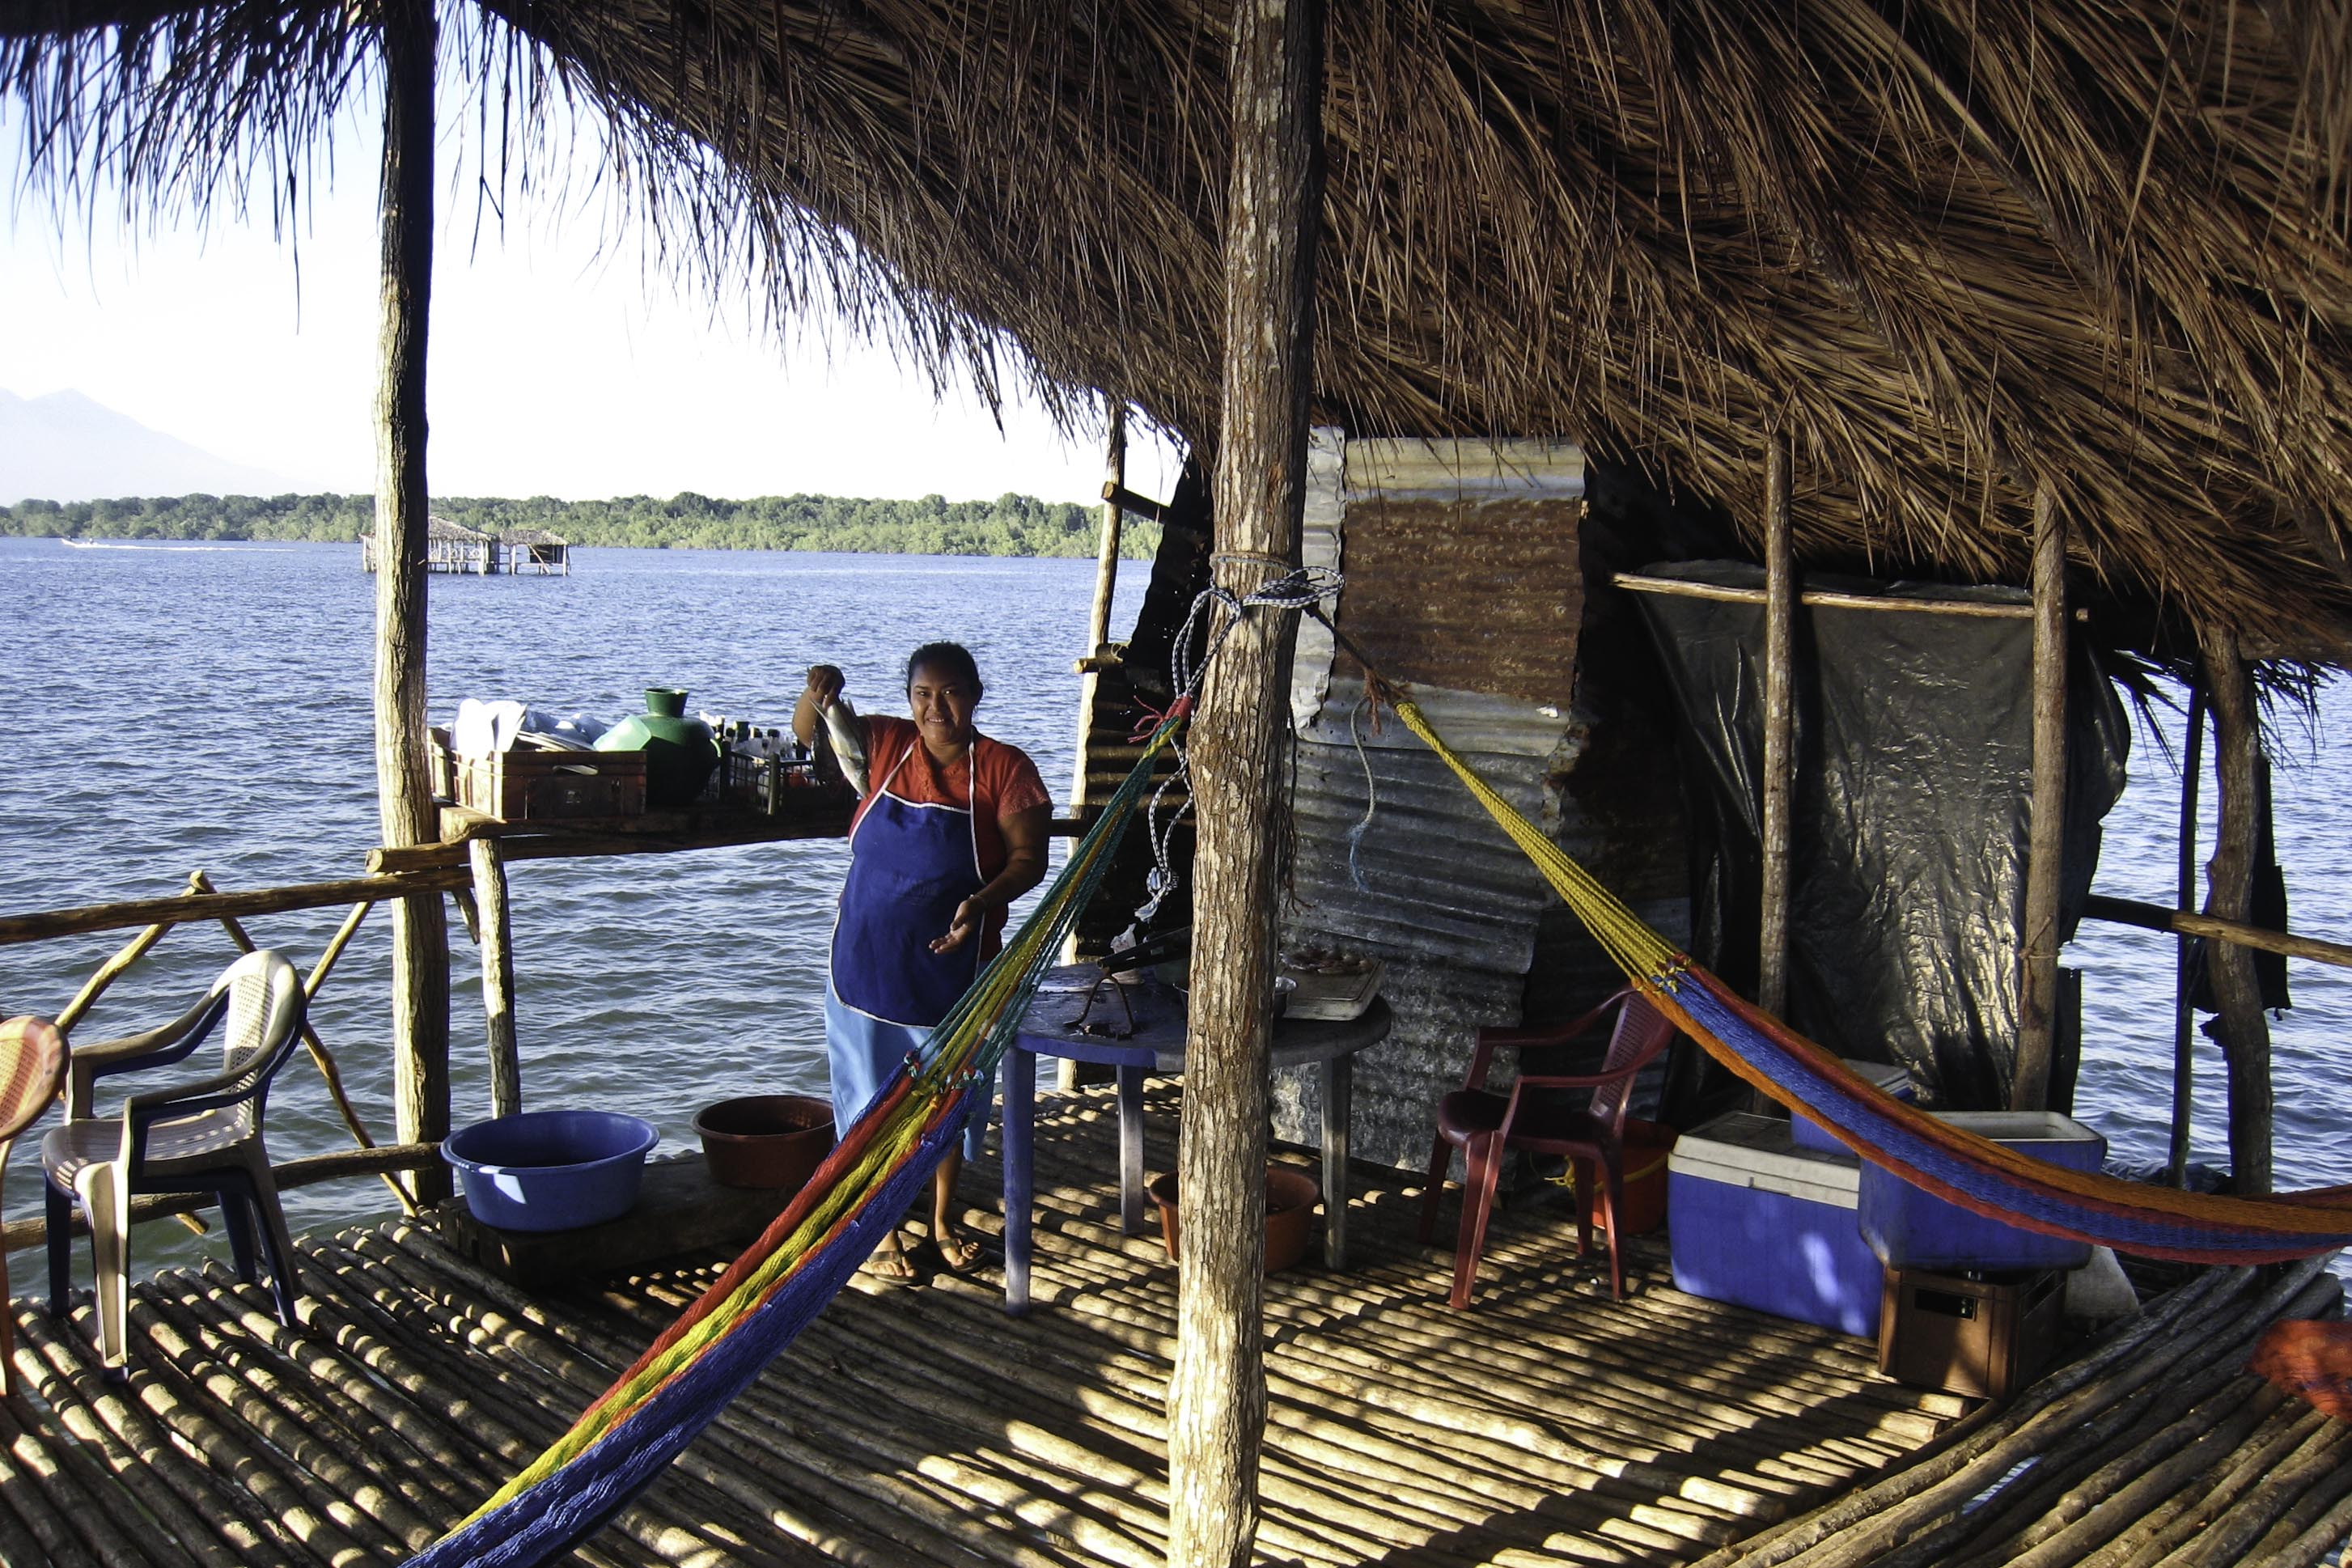 blog guatemalan hammocks hammock gently img swaying was travel great day with dinner later places picturesque we master and tuesday before filled got in to venture them overall church a relax christian